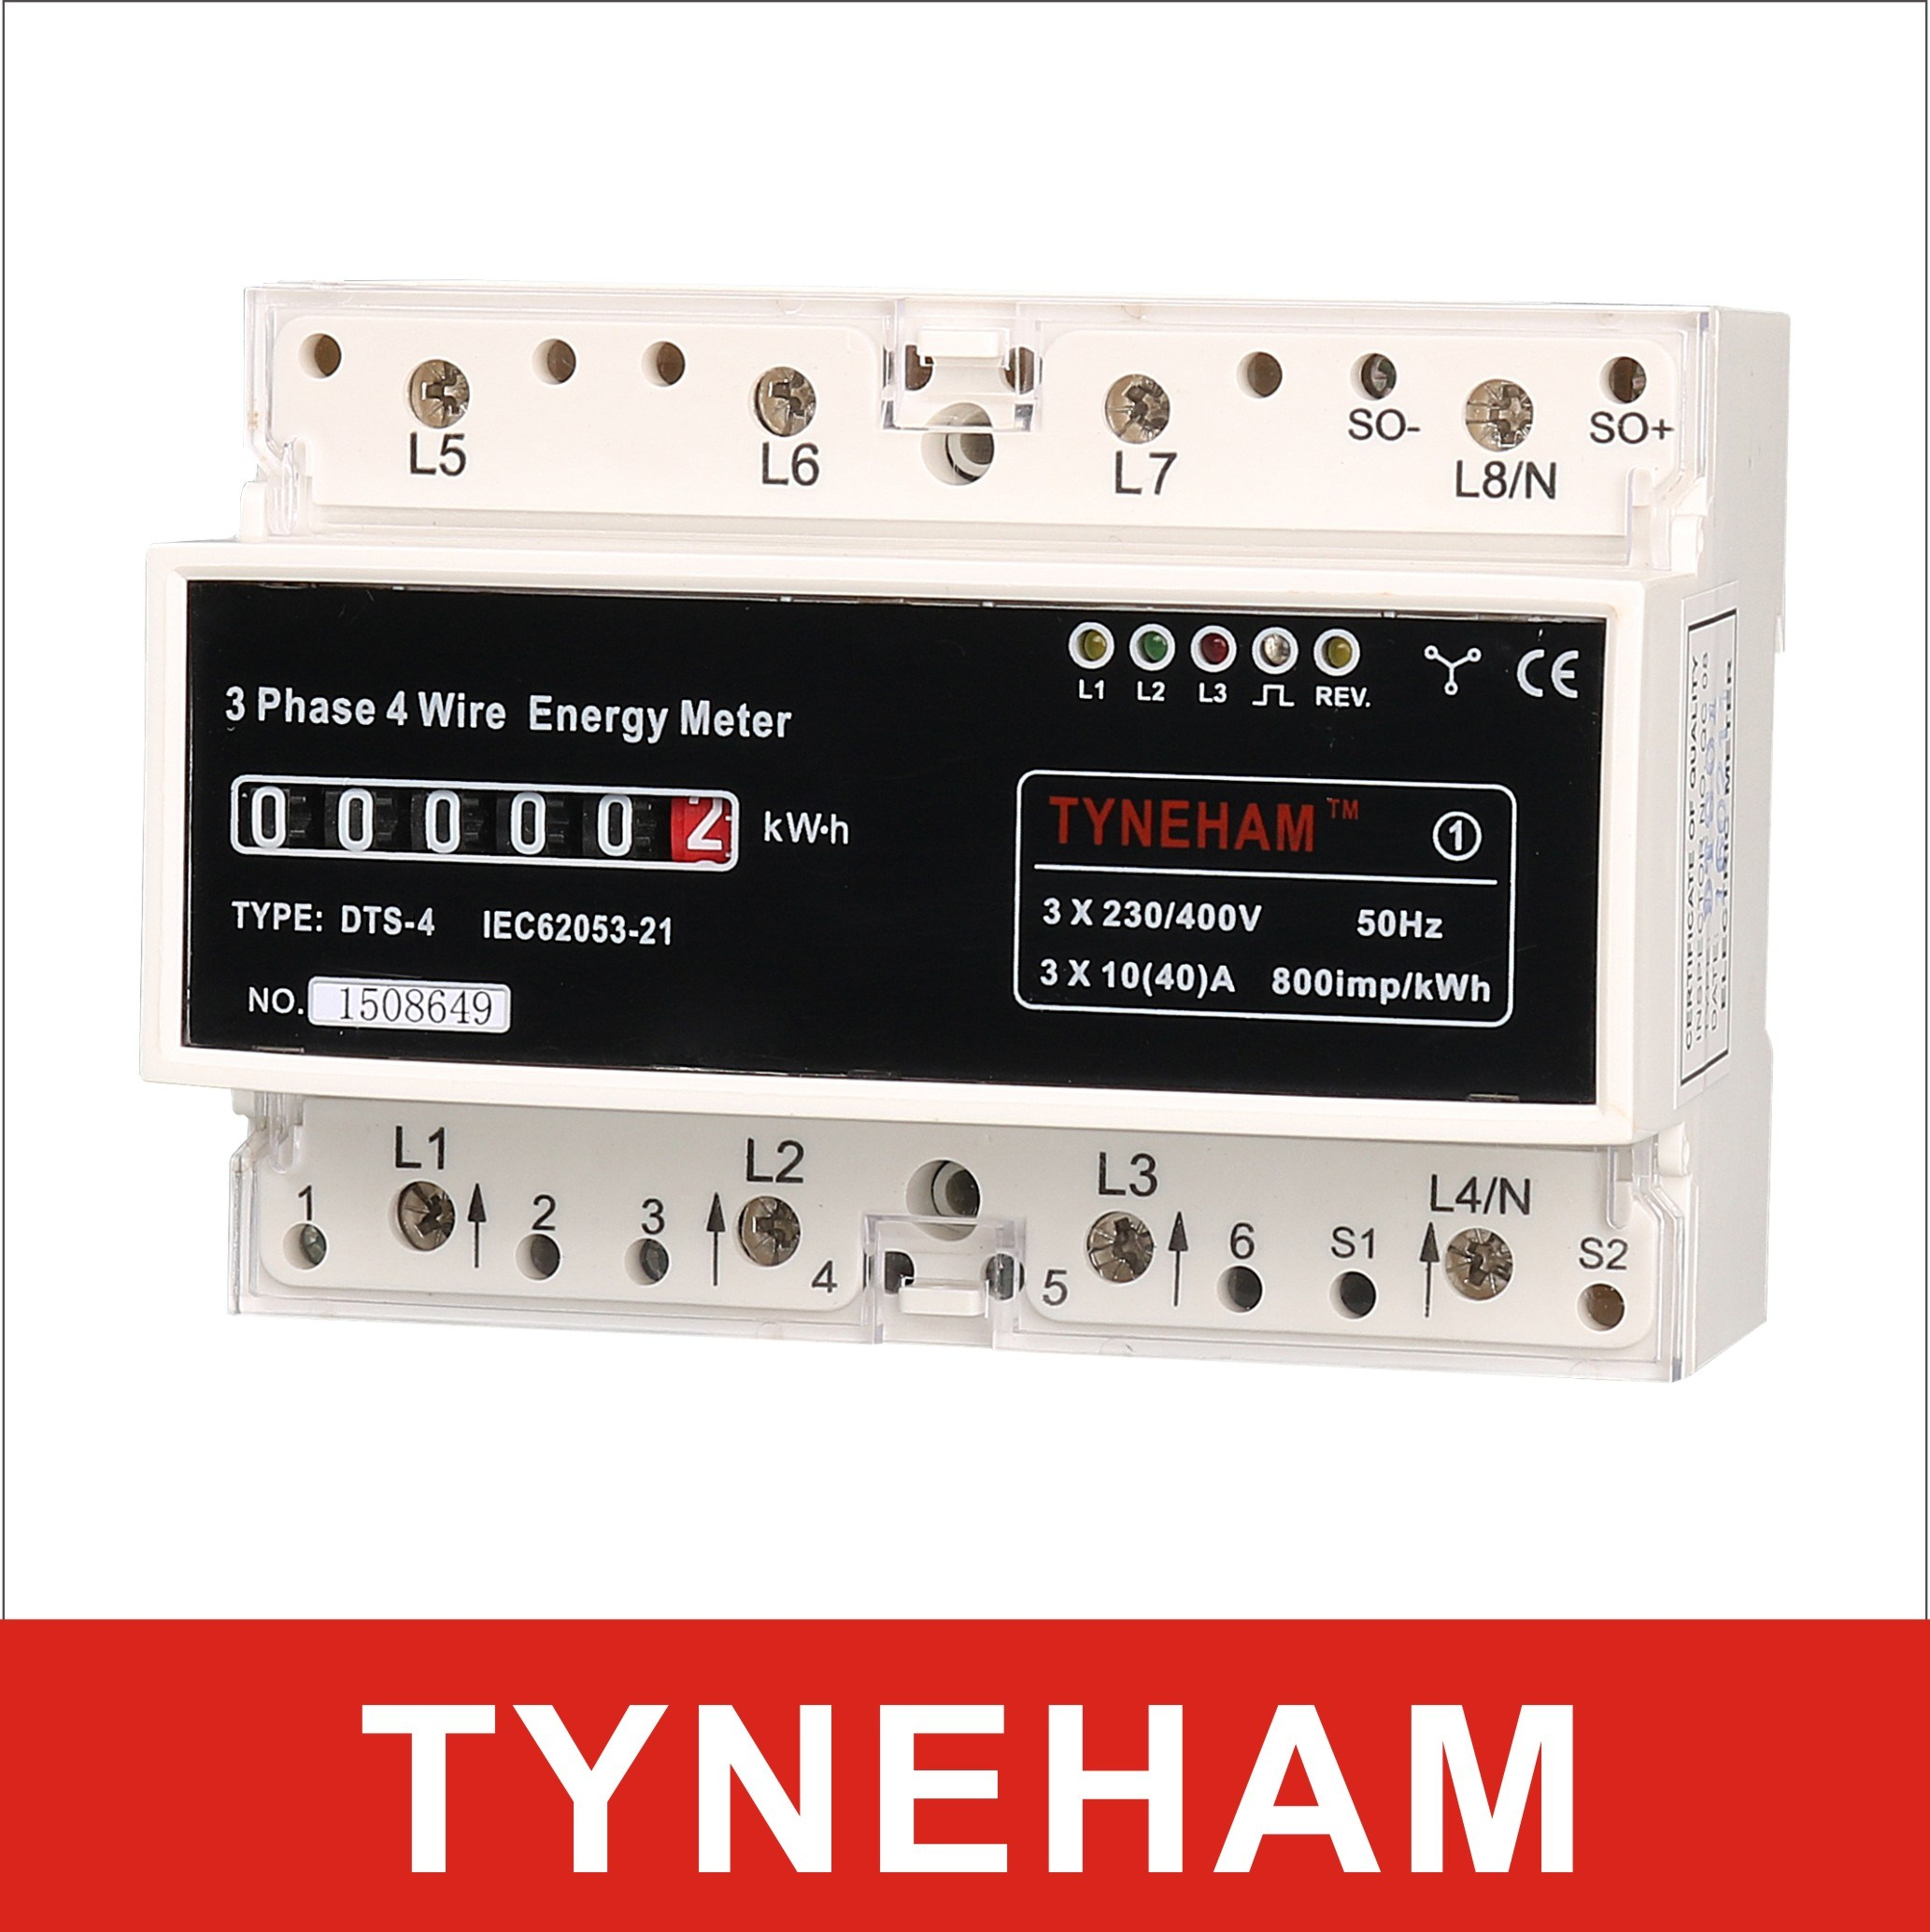 Dts-4r Series DIN Rial Mounted Three Phase Electronic Energy Meter